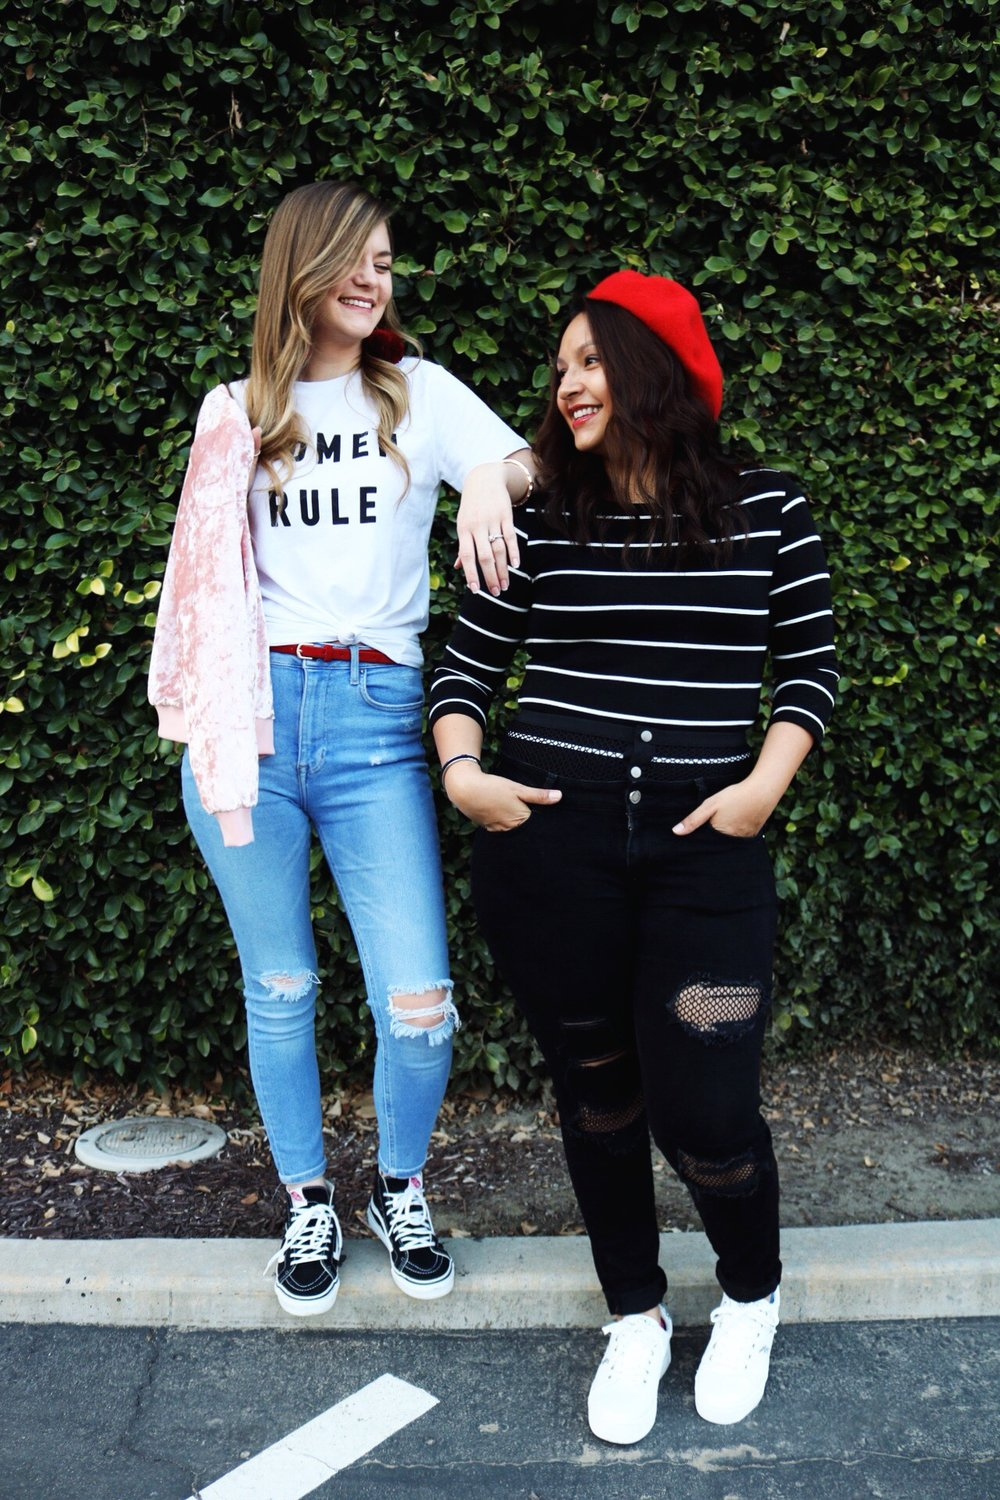 Women Rule Forever 21 Tee, Fish net black denim, distressed light denim, pink velvet bomber, red beret, maria shireen bracelet, Galentines Day, black high top Vans